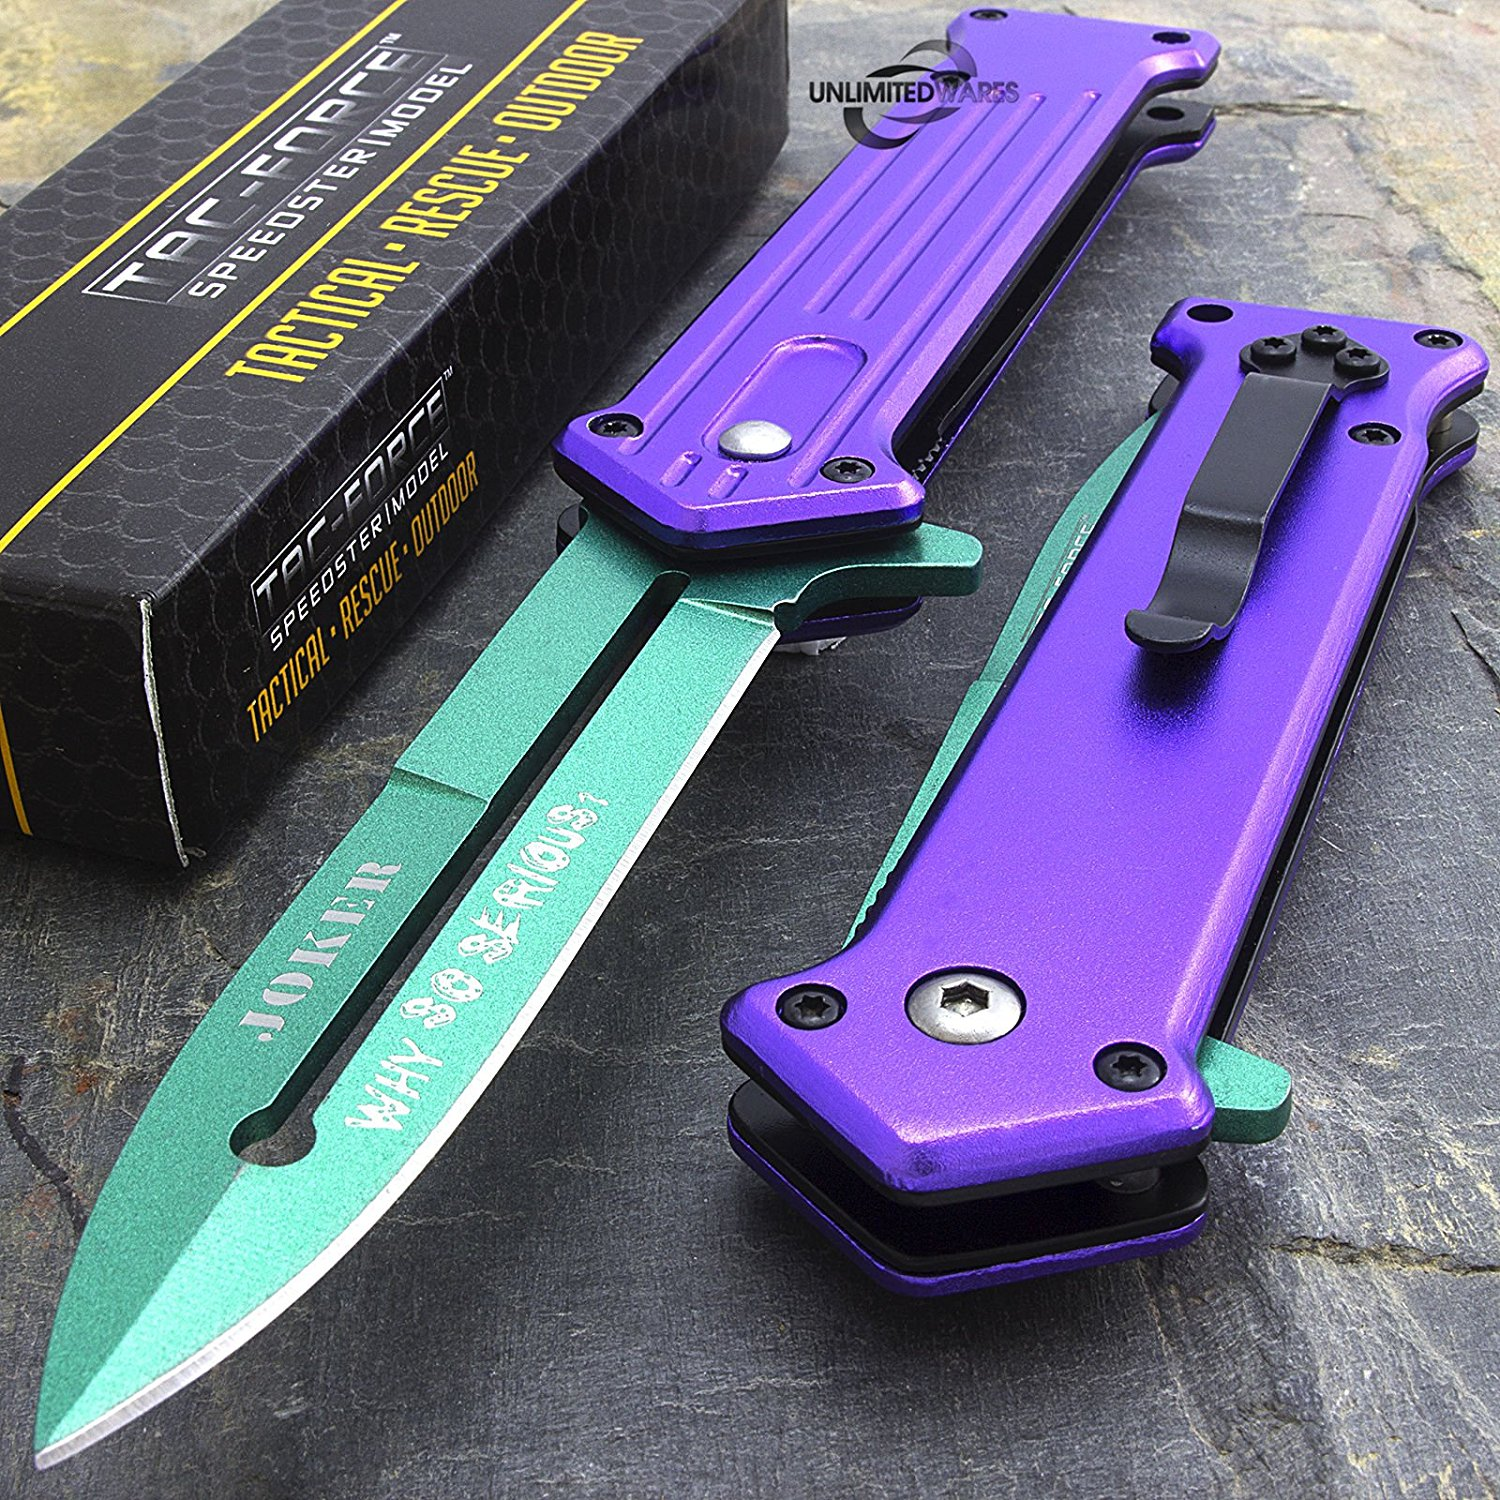 "7.5"" JOKER SPRING ASSISTED FOLDING POCKET KNIFE Blade Batman Two Tone by, Tac Force Spring Assisted Joker Knife. By Only US"